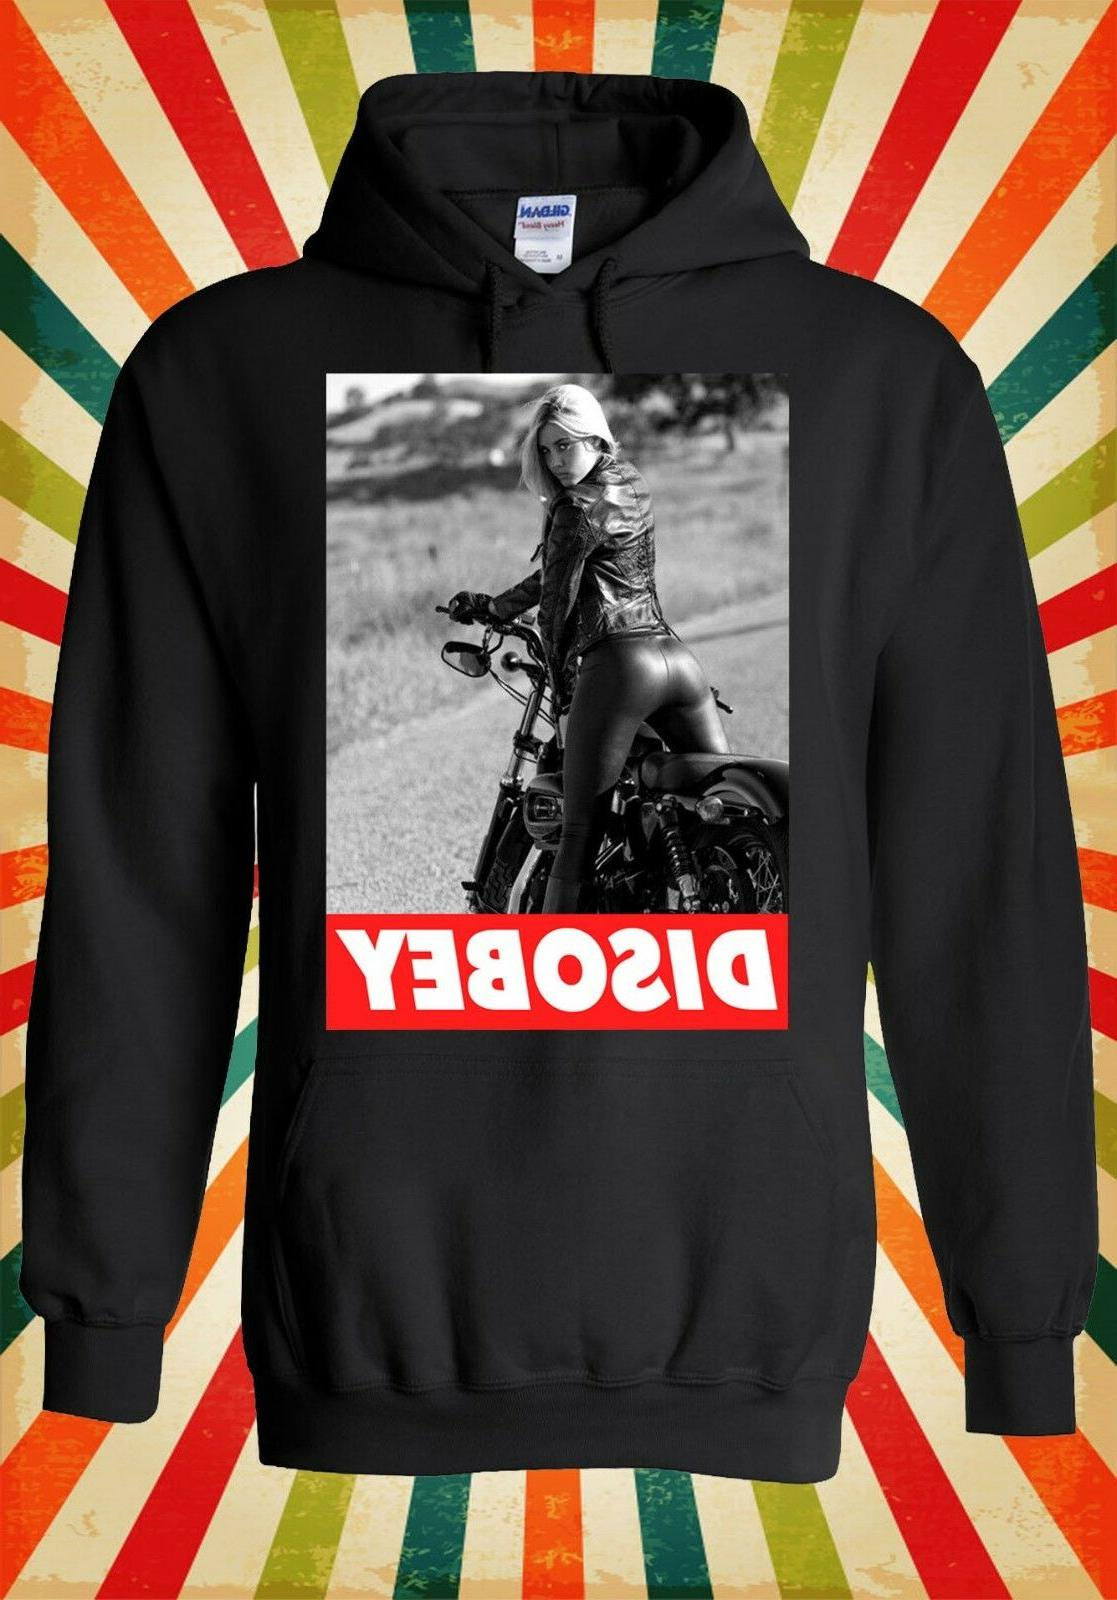 Sexy Bike Girl Riding Funny Novelty Men Women Unisex Top Hoo